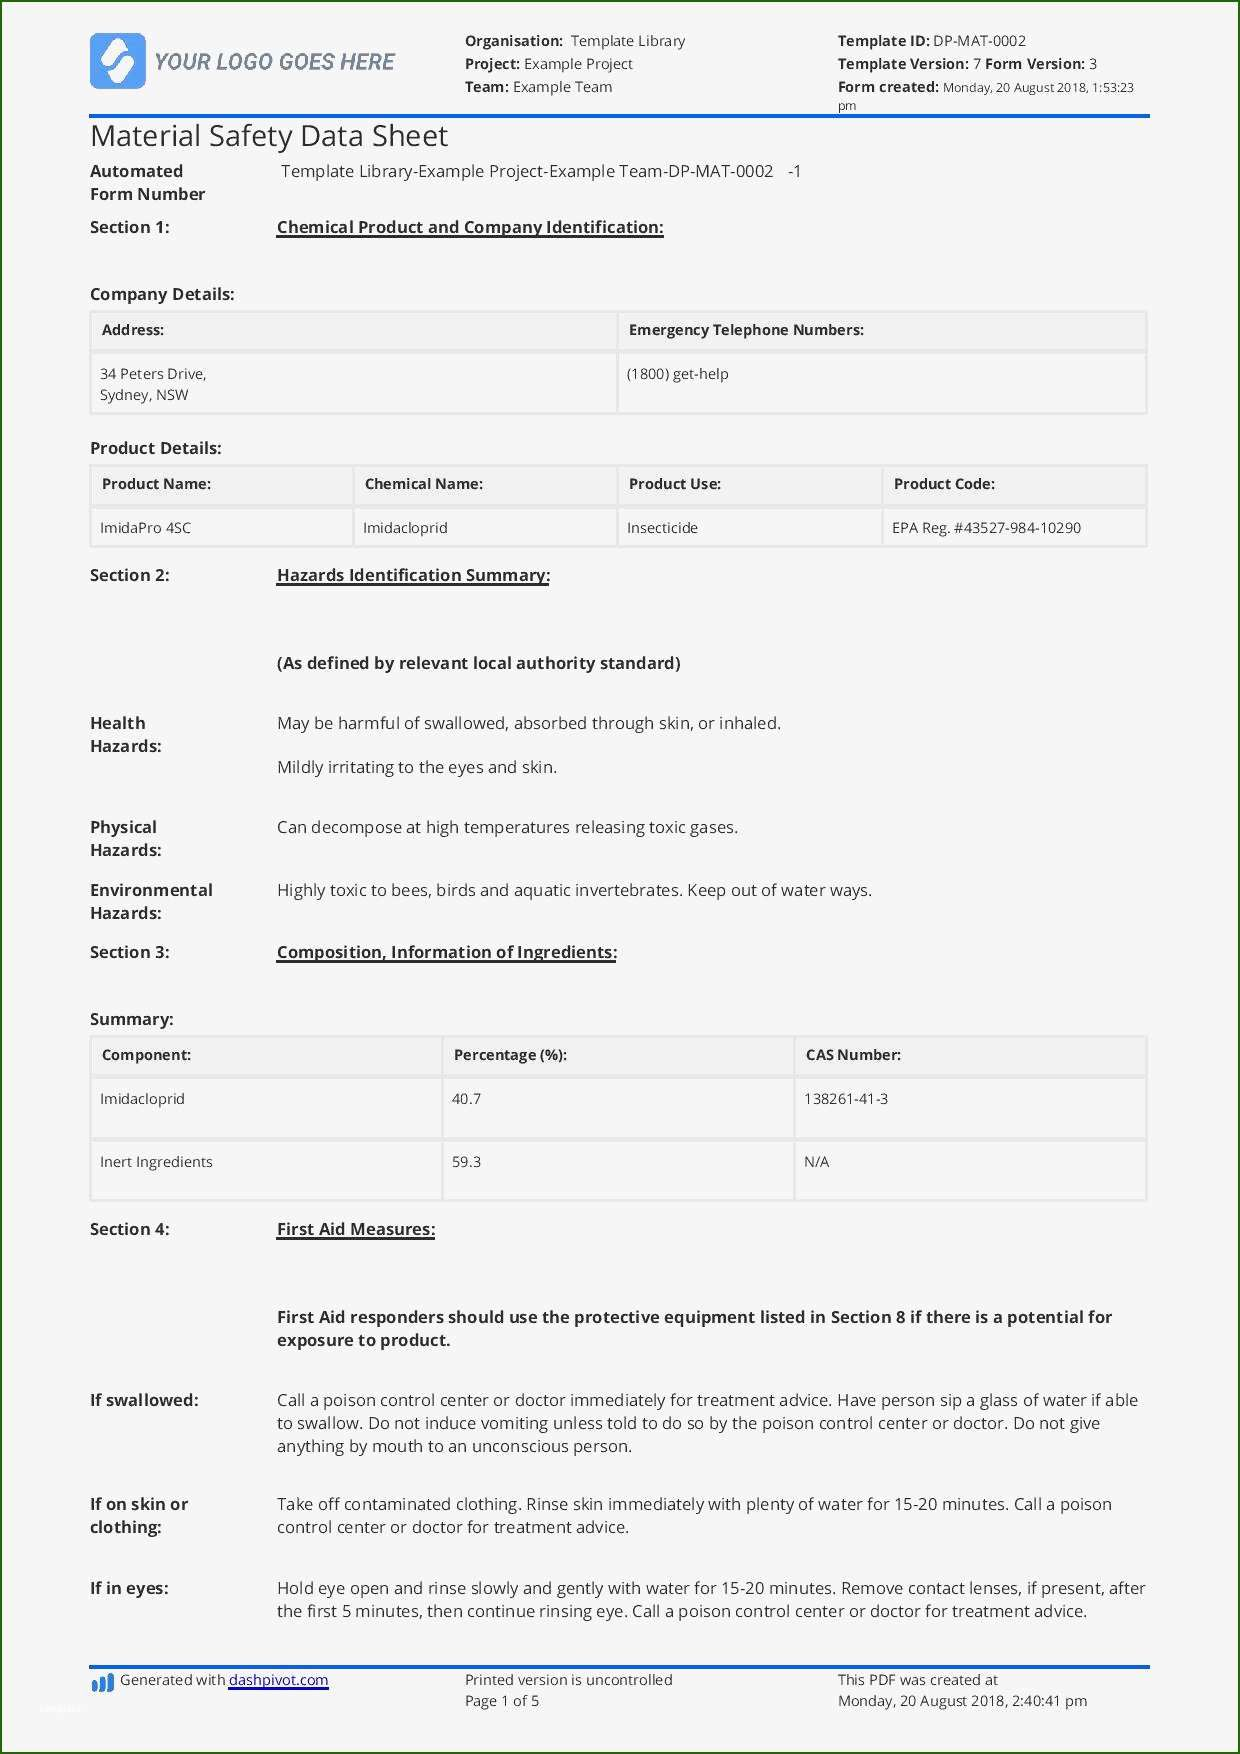 15 Foolproof Safety Data Sheet Template with Photos in